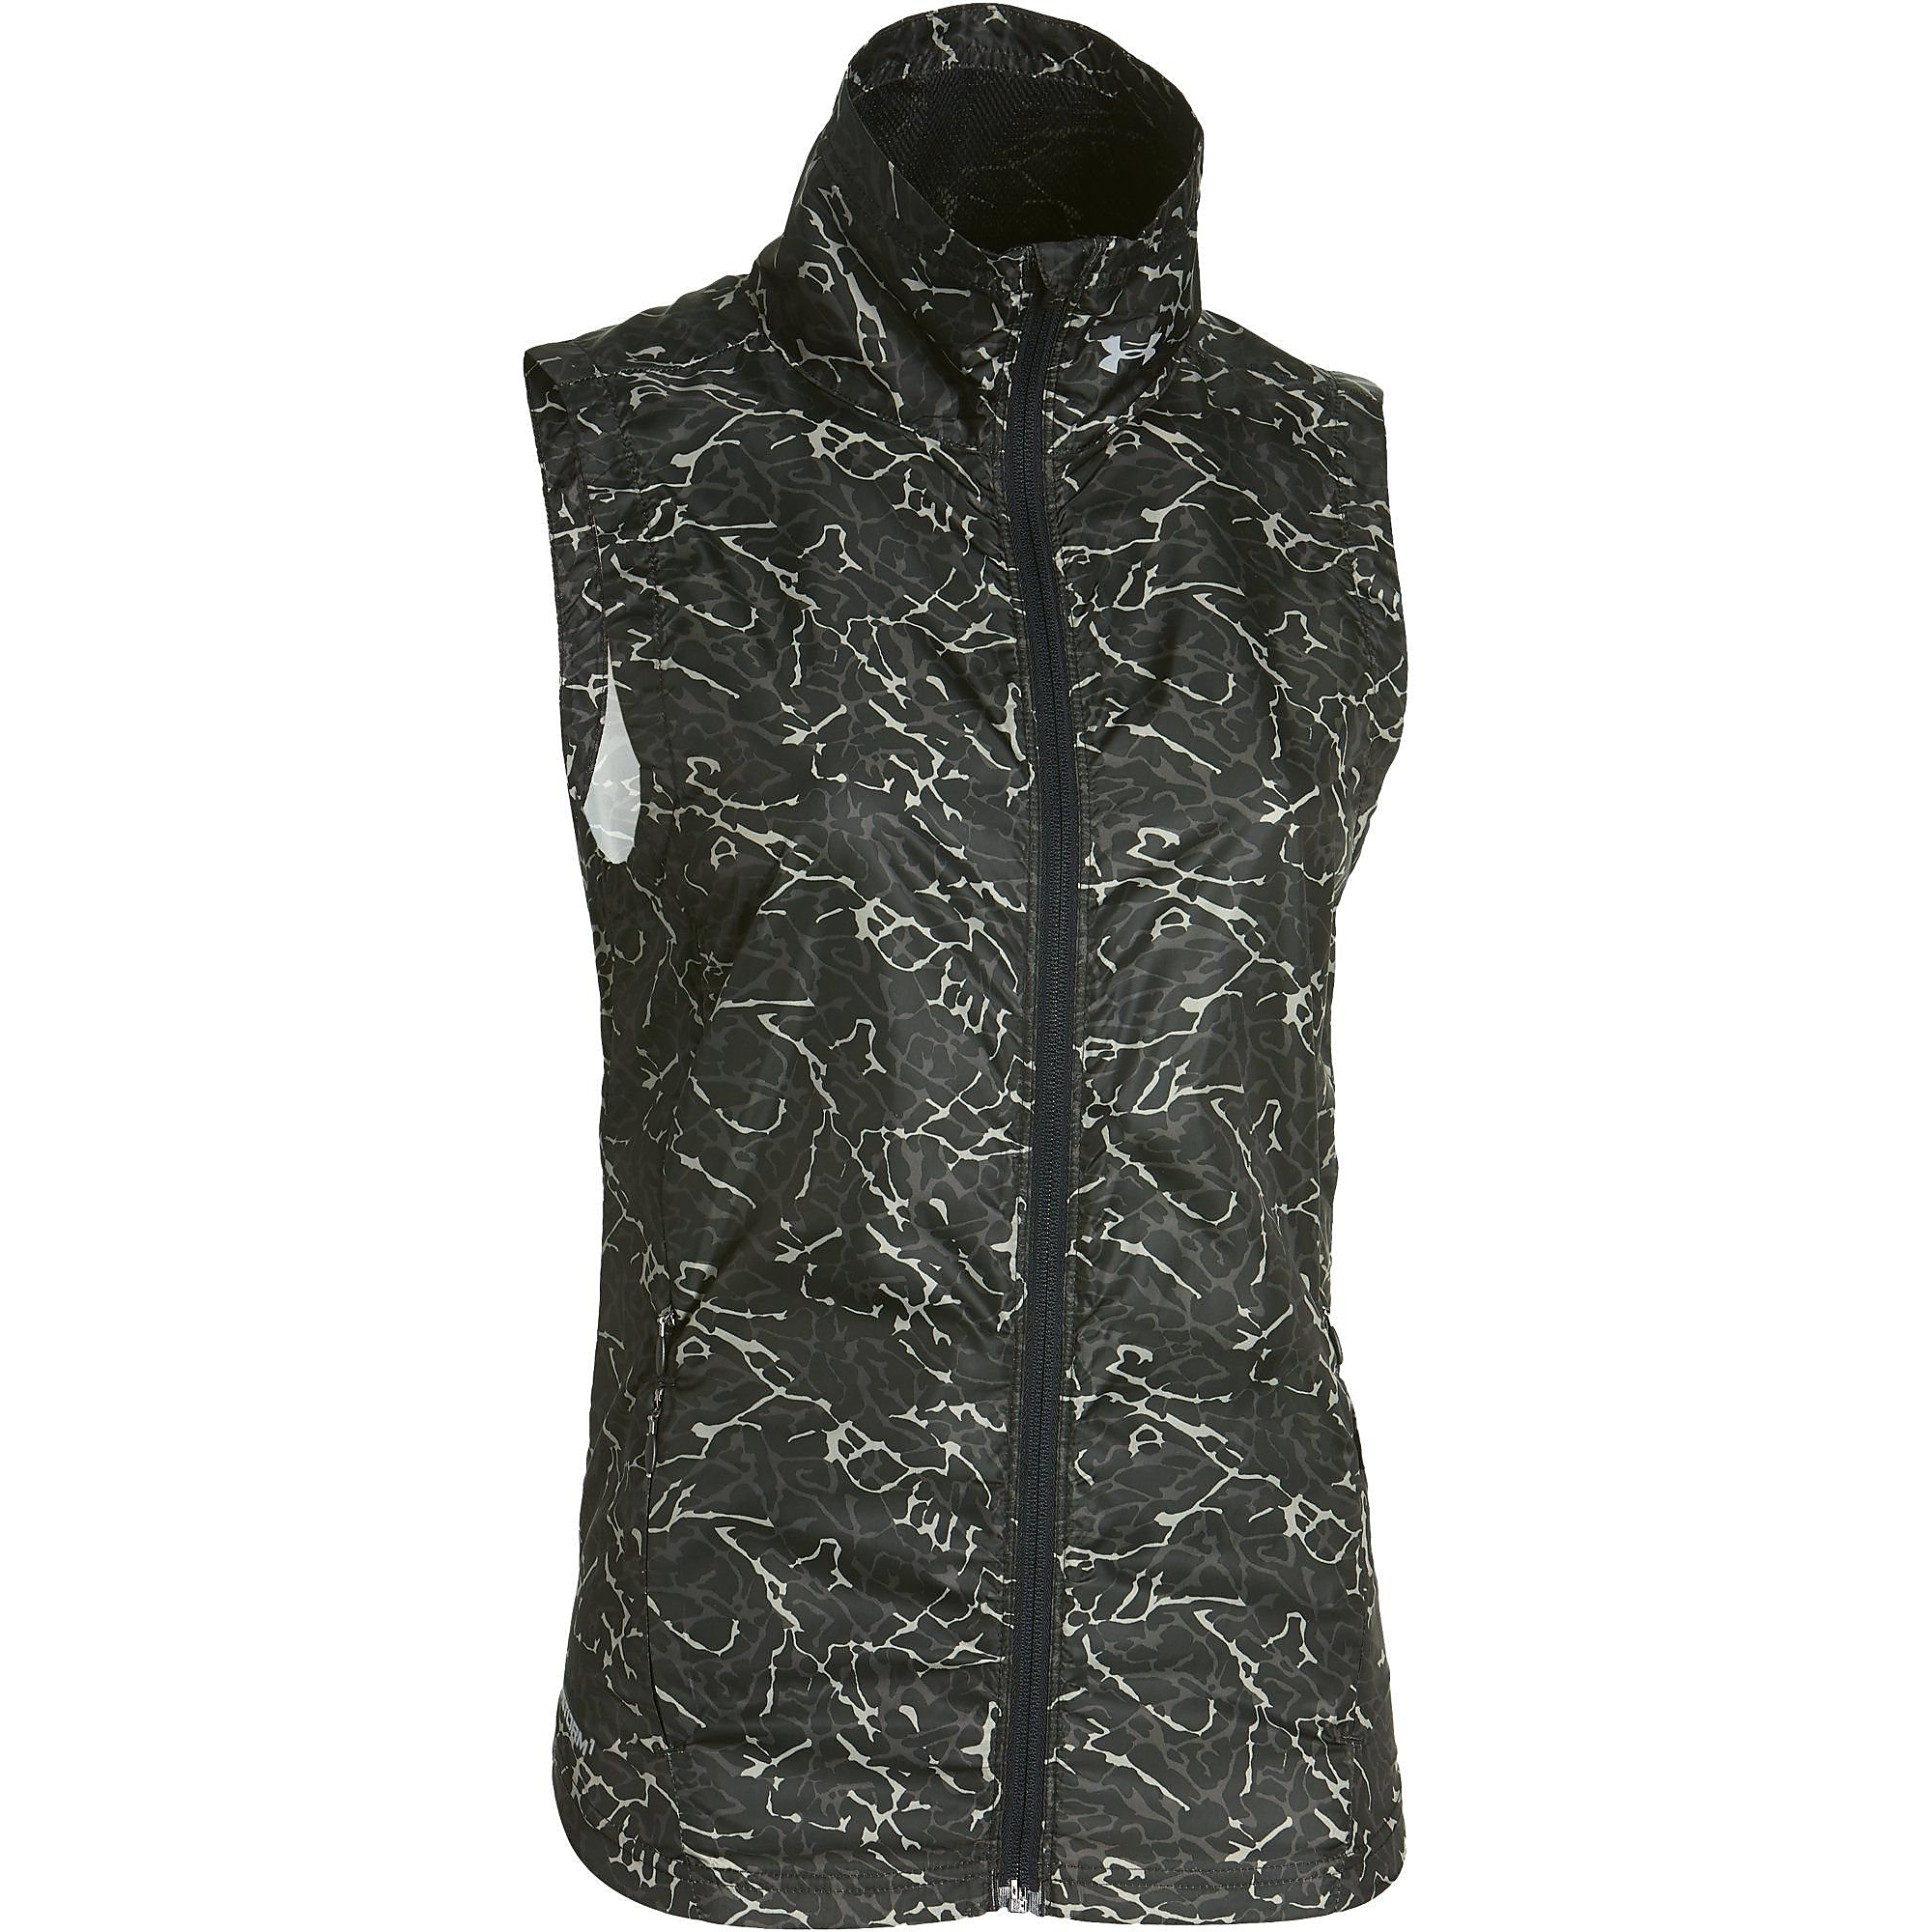 Under Armour PRINT LAYERED UP STORM